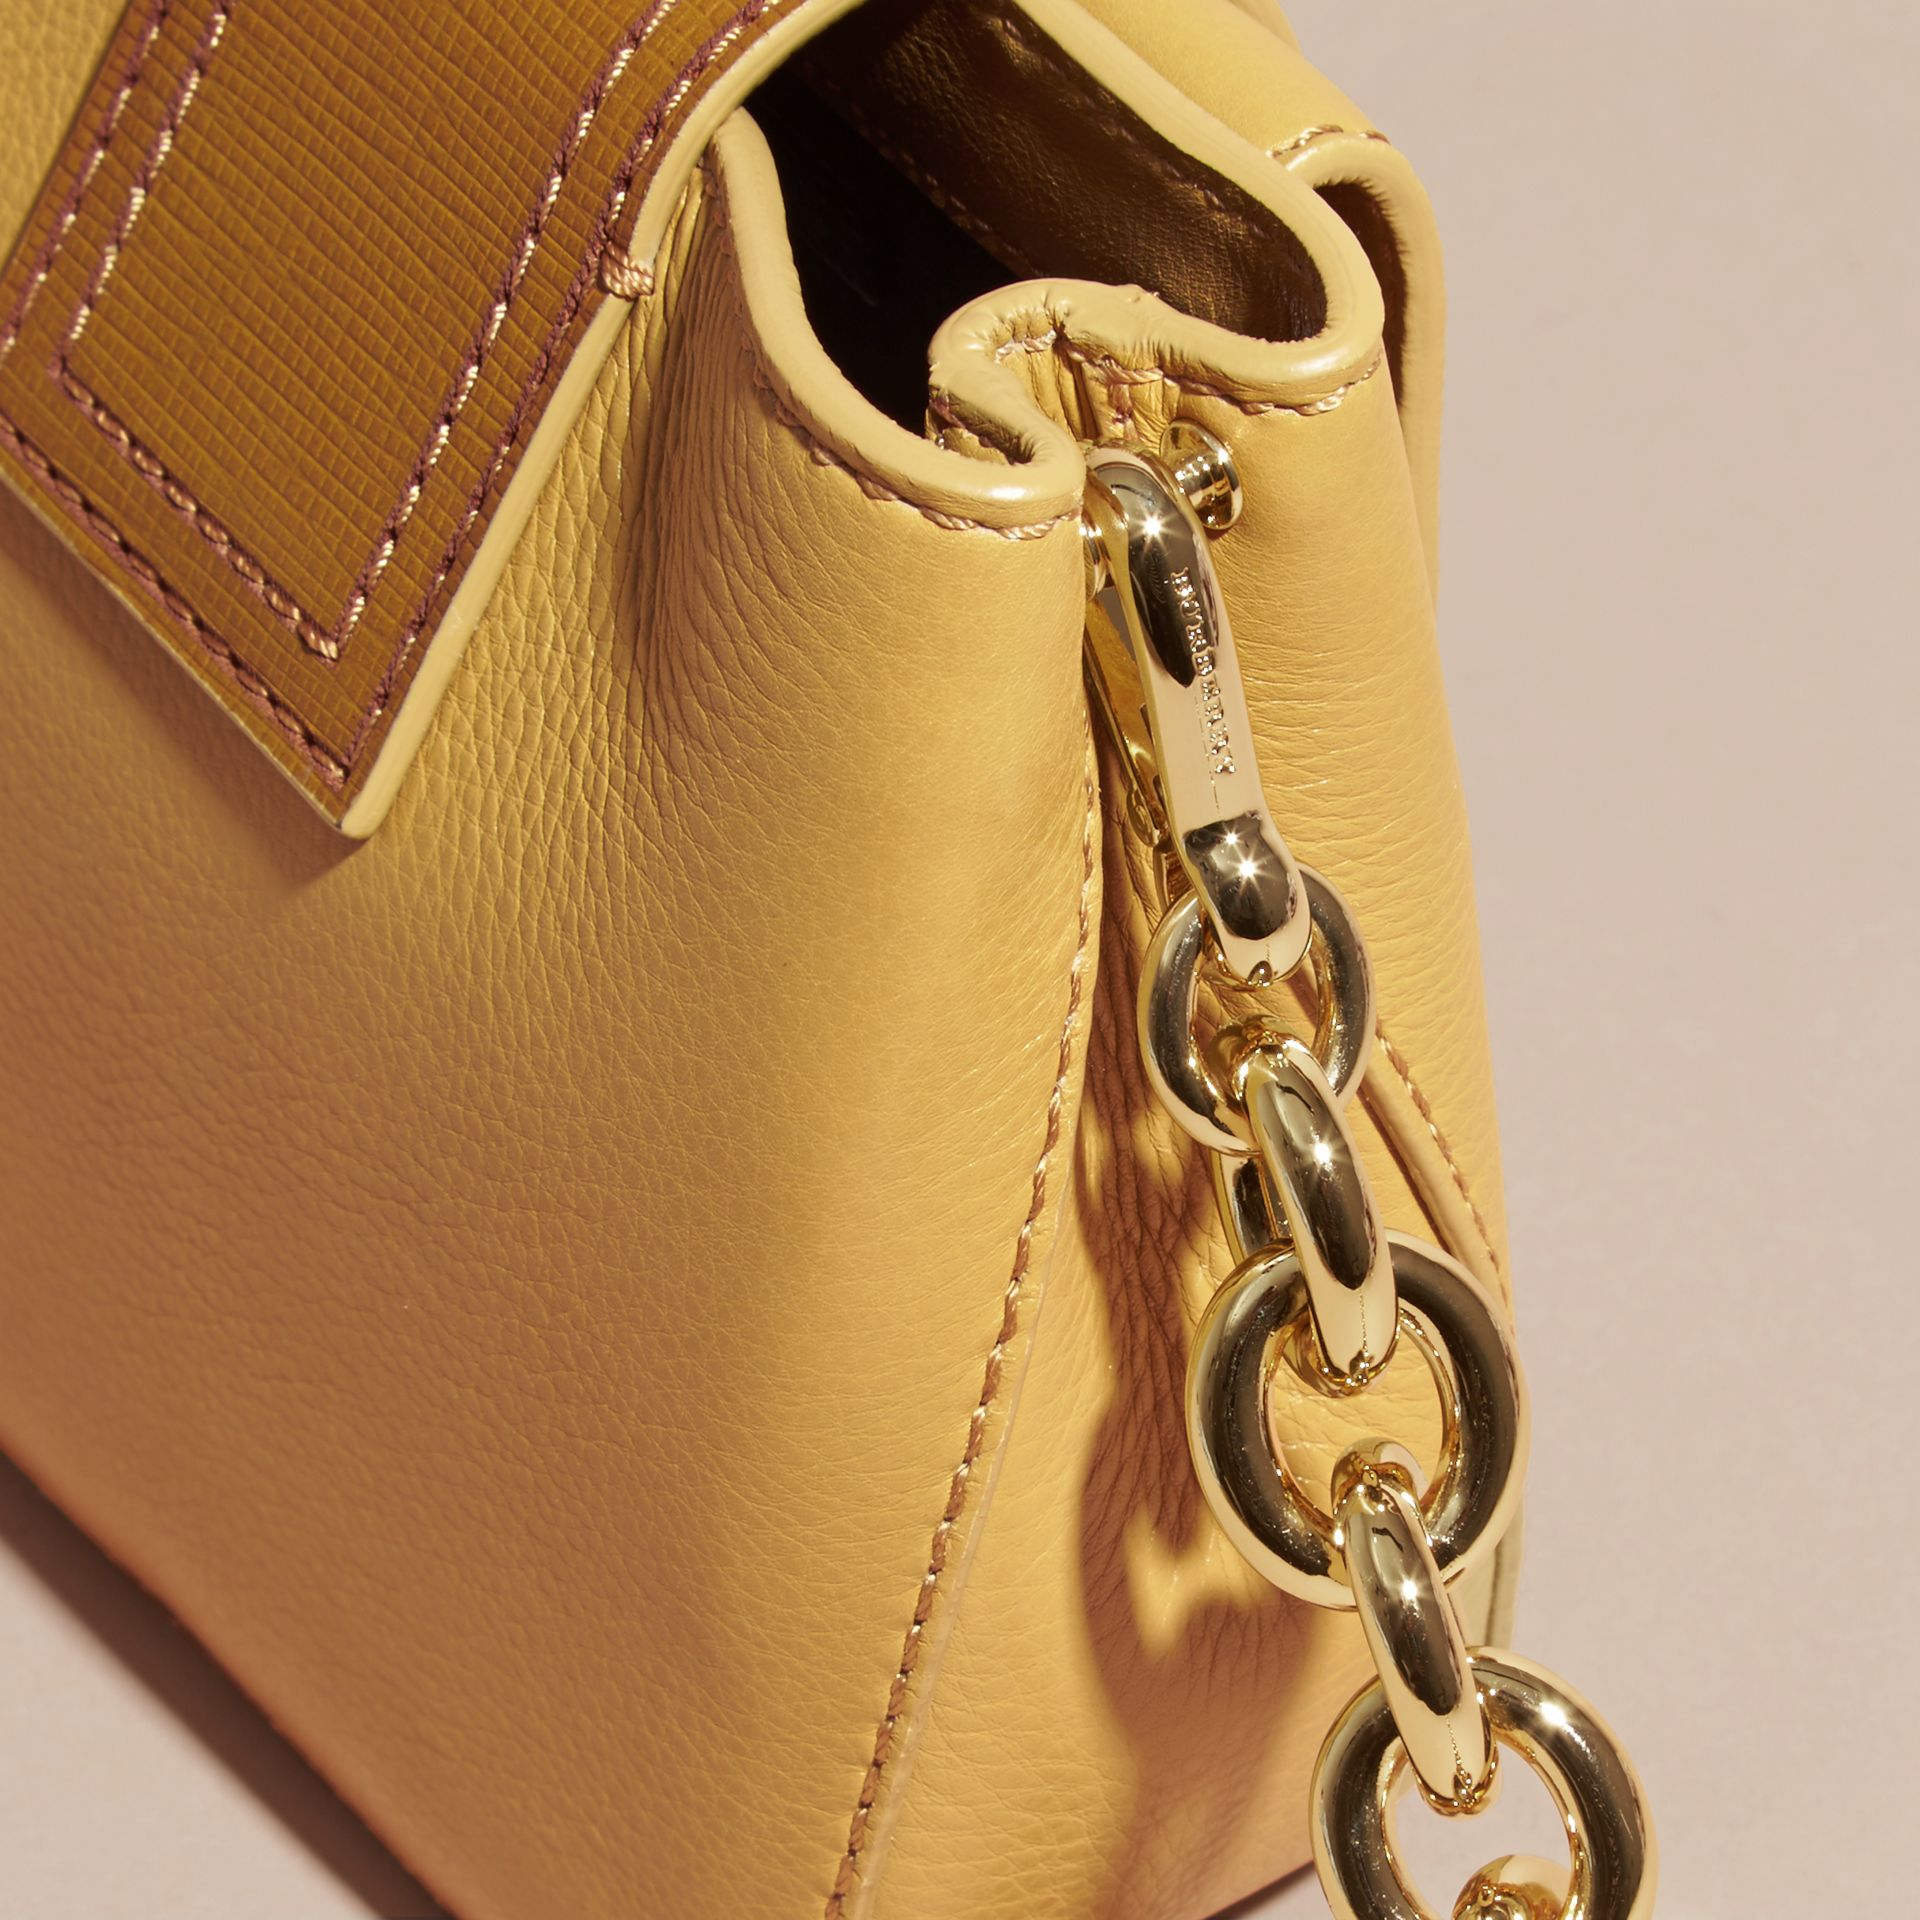 Ochre yellow The Small Square Buckle Bag in Leather - gallery image 7